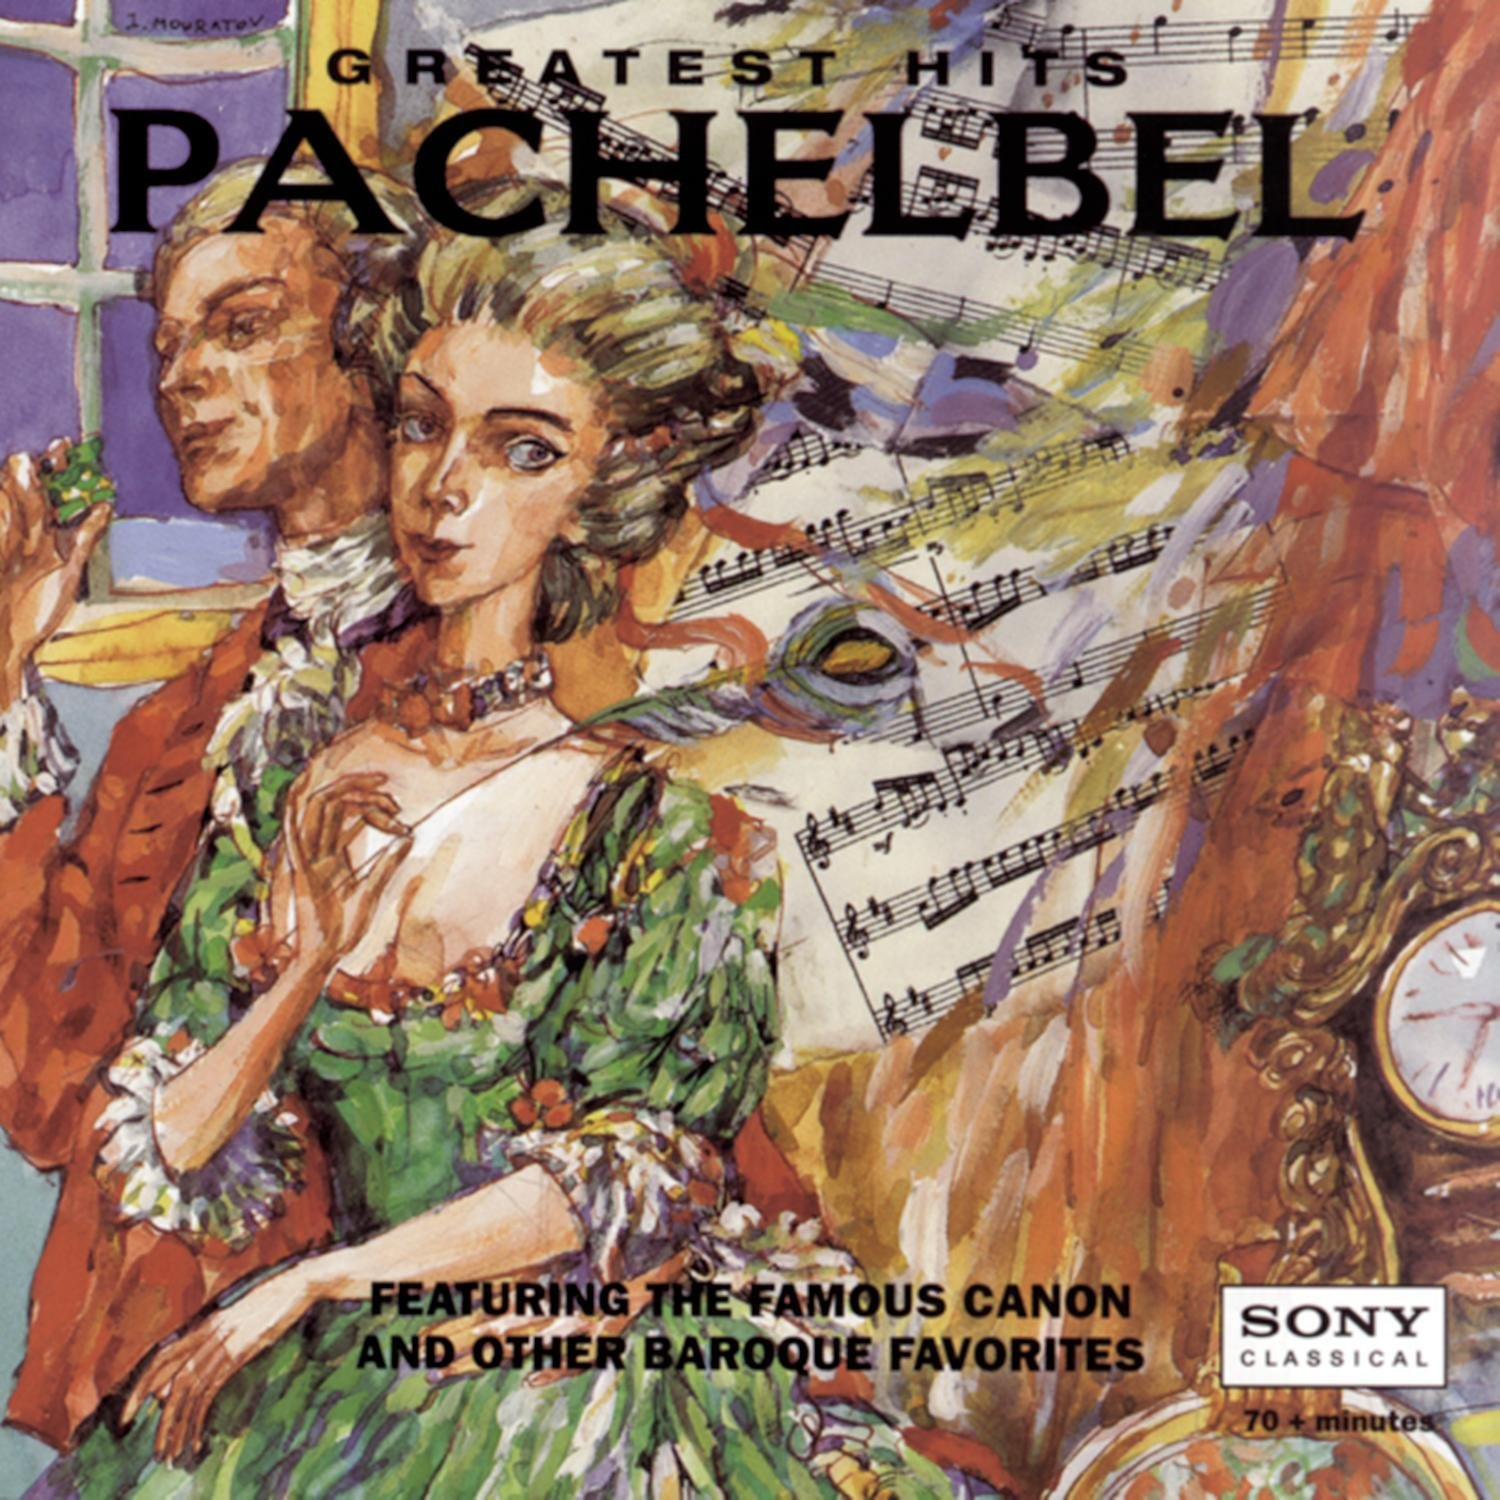 Pachelbel Greatest Hits by Sony